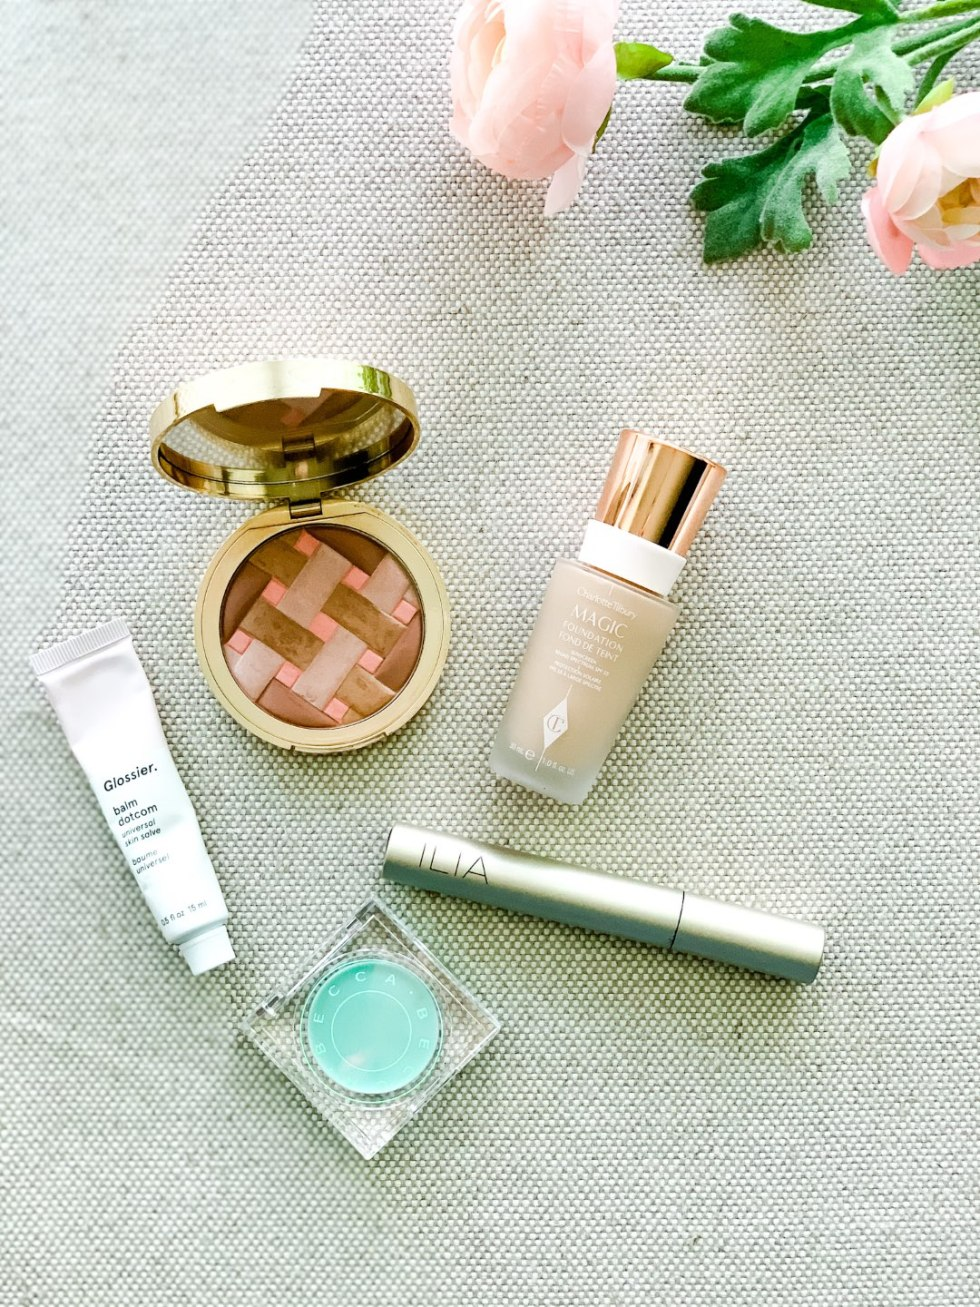 Amazon Beauty Essentials by popular North Carolina beauty blog, I'm Fixin' To: image of a BECCA Anti-Fatigue Under Eye Primer, Charlotte Tilbury Magic Foundation, Too Faced Sweetie Pie Bronzer, ILIA Limitless Lash Mascara, and Glossier balm dot.com.